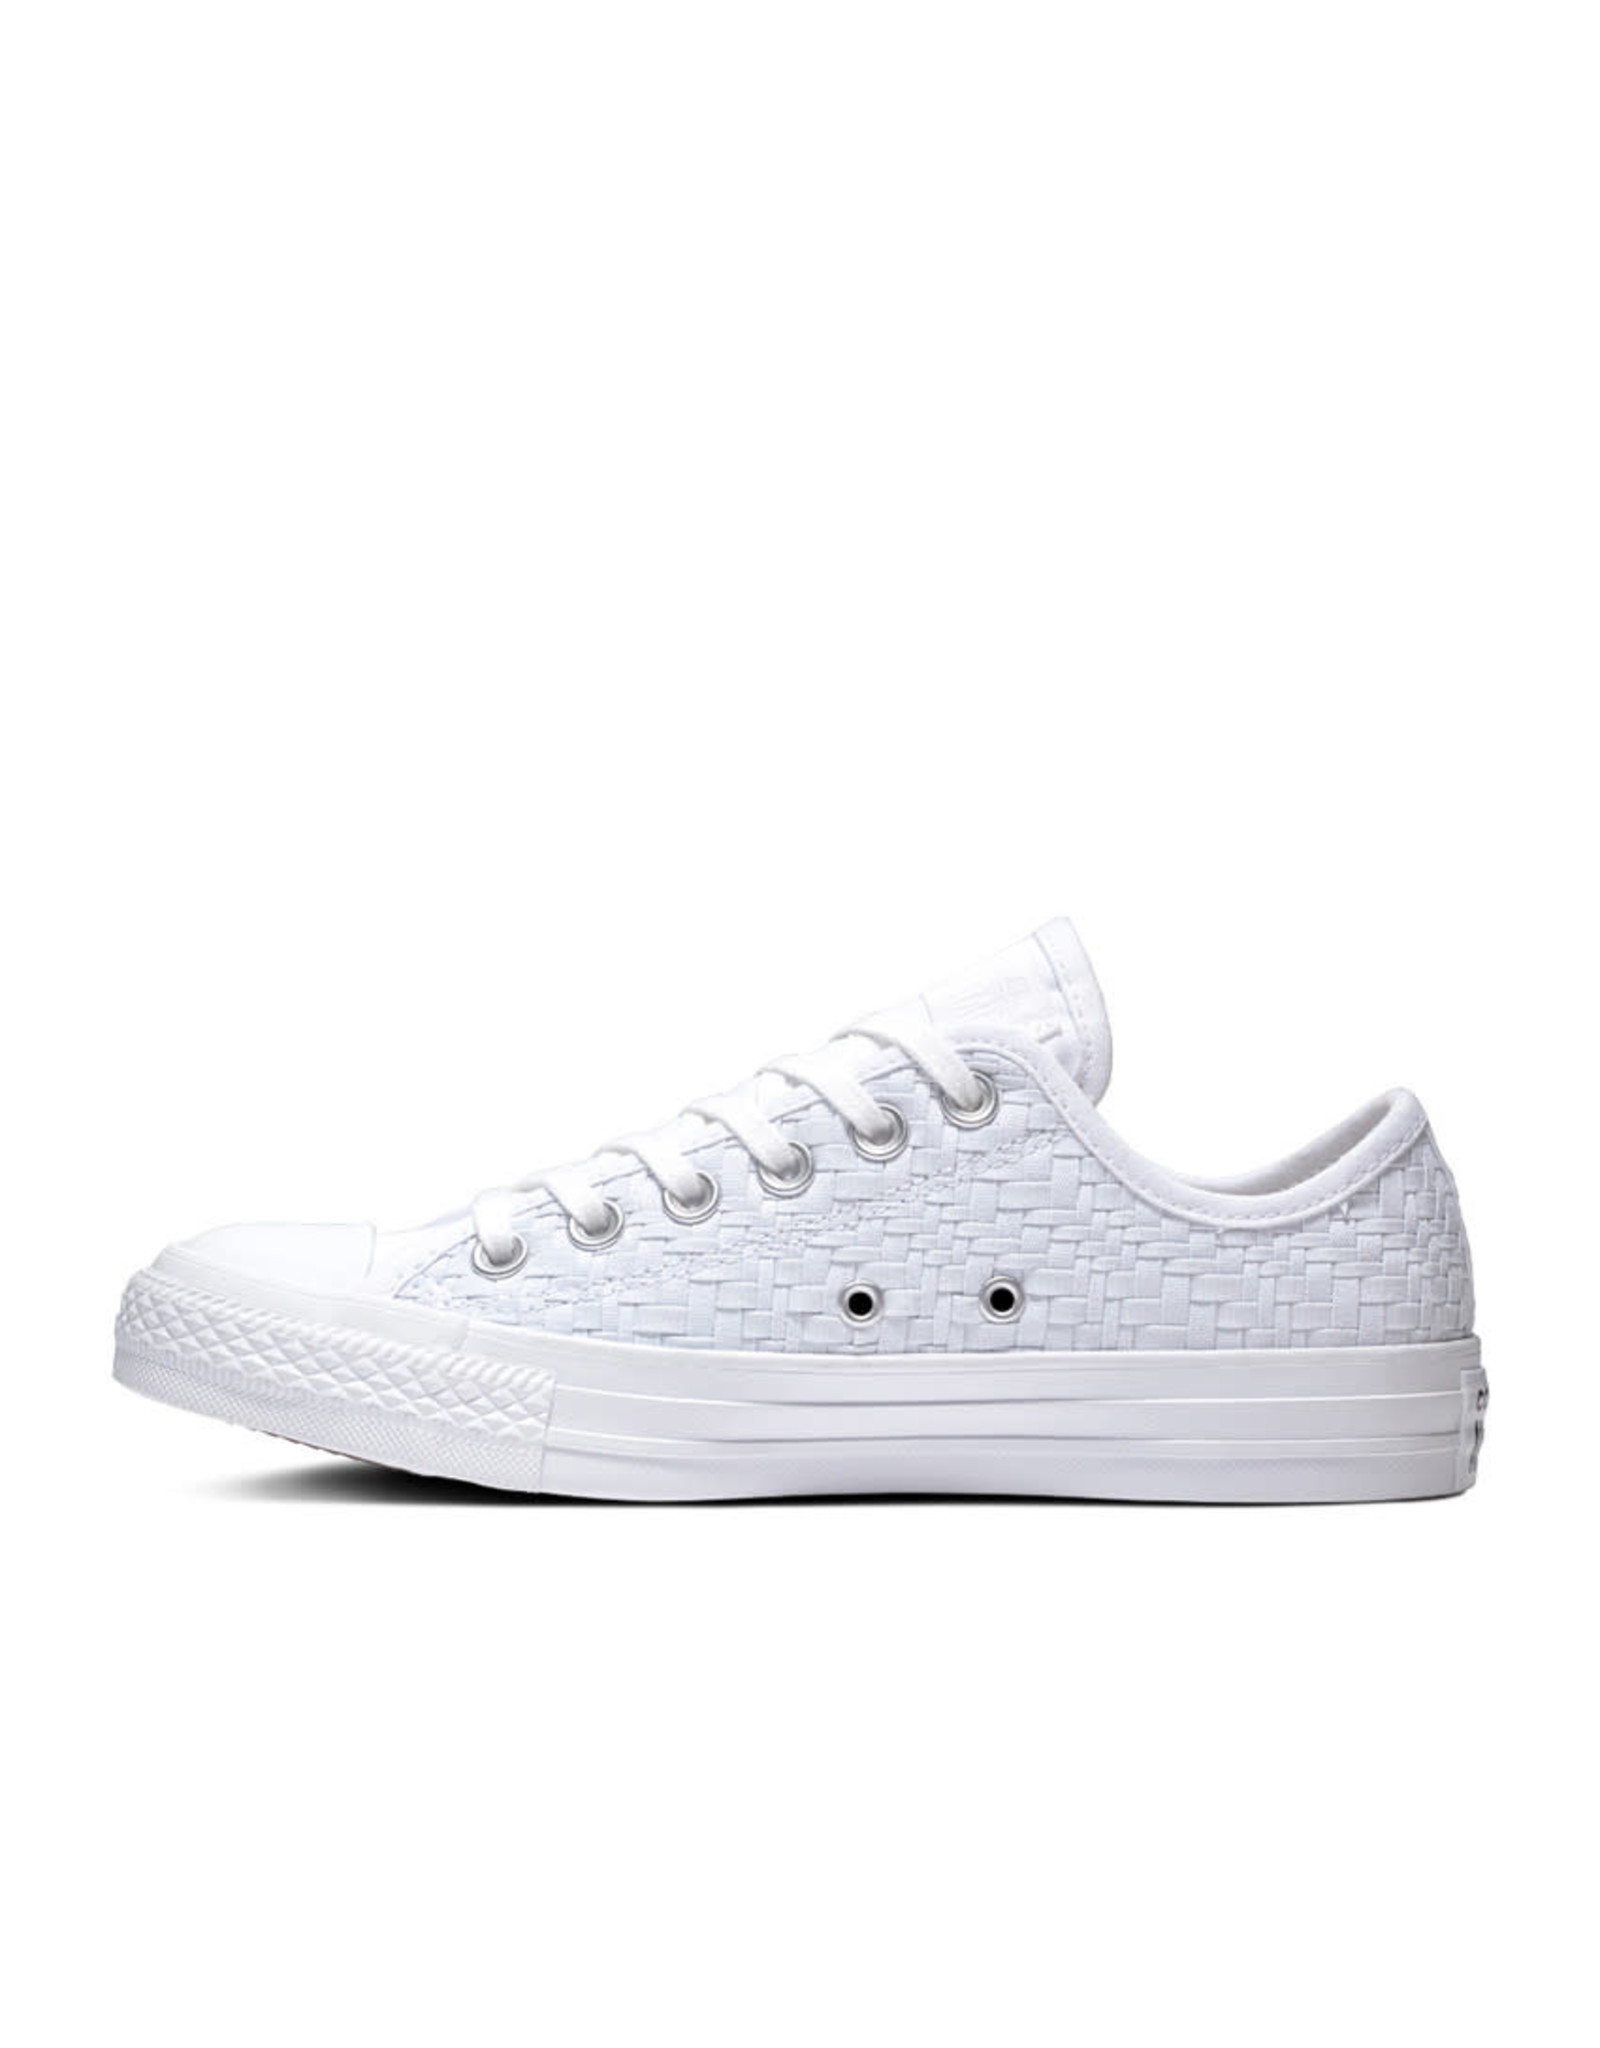 CONVERSE CHUCK TAYLOR ALL STAR OX WHITE/EGRET/WHITE C13WE-564354C